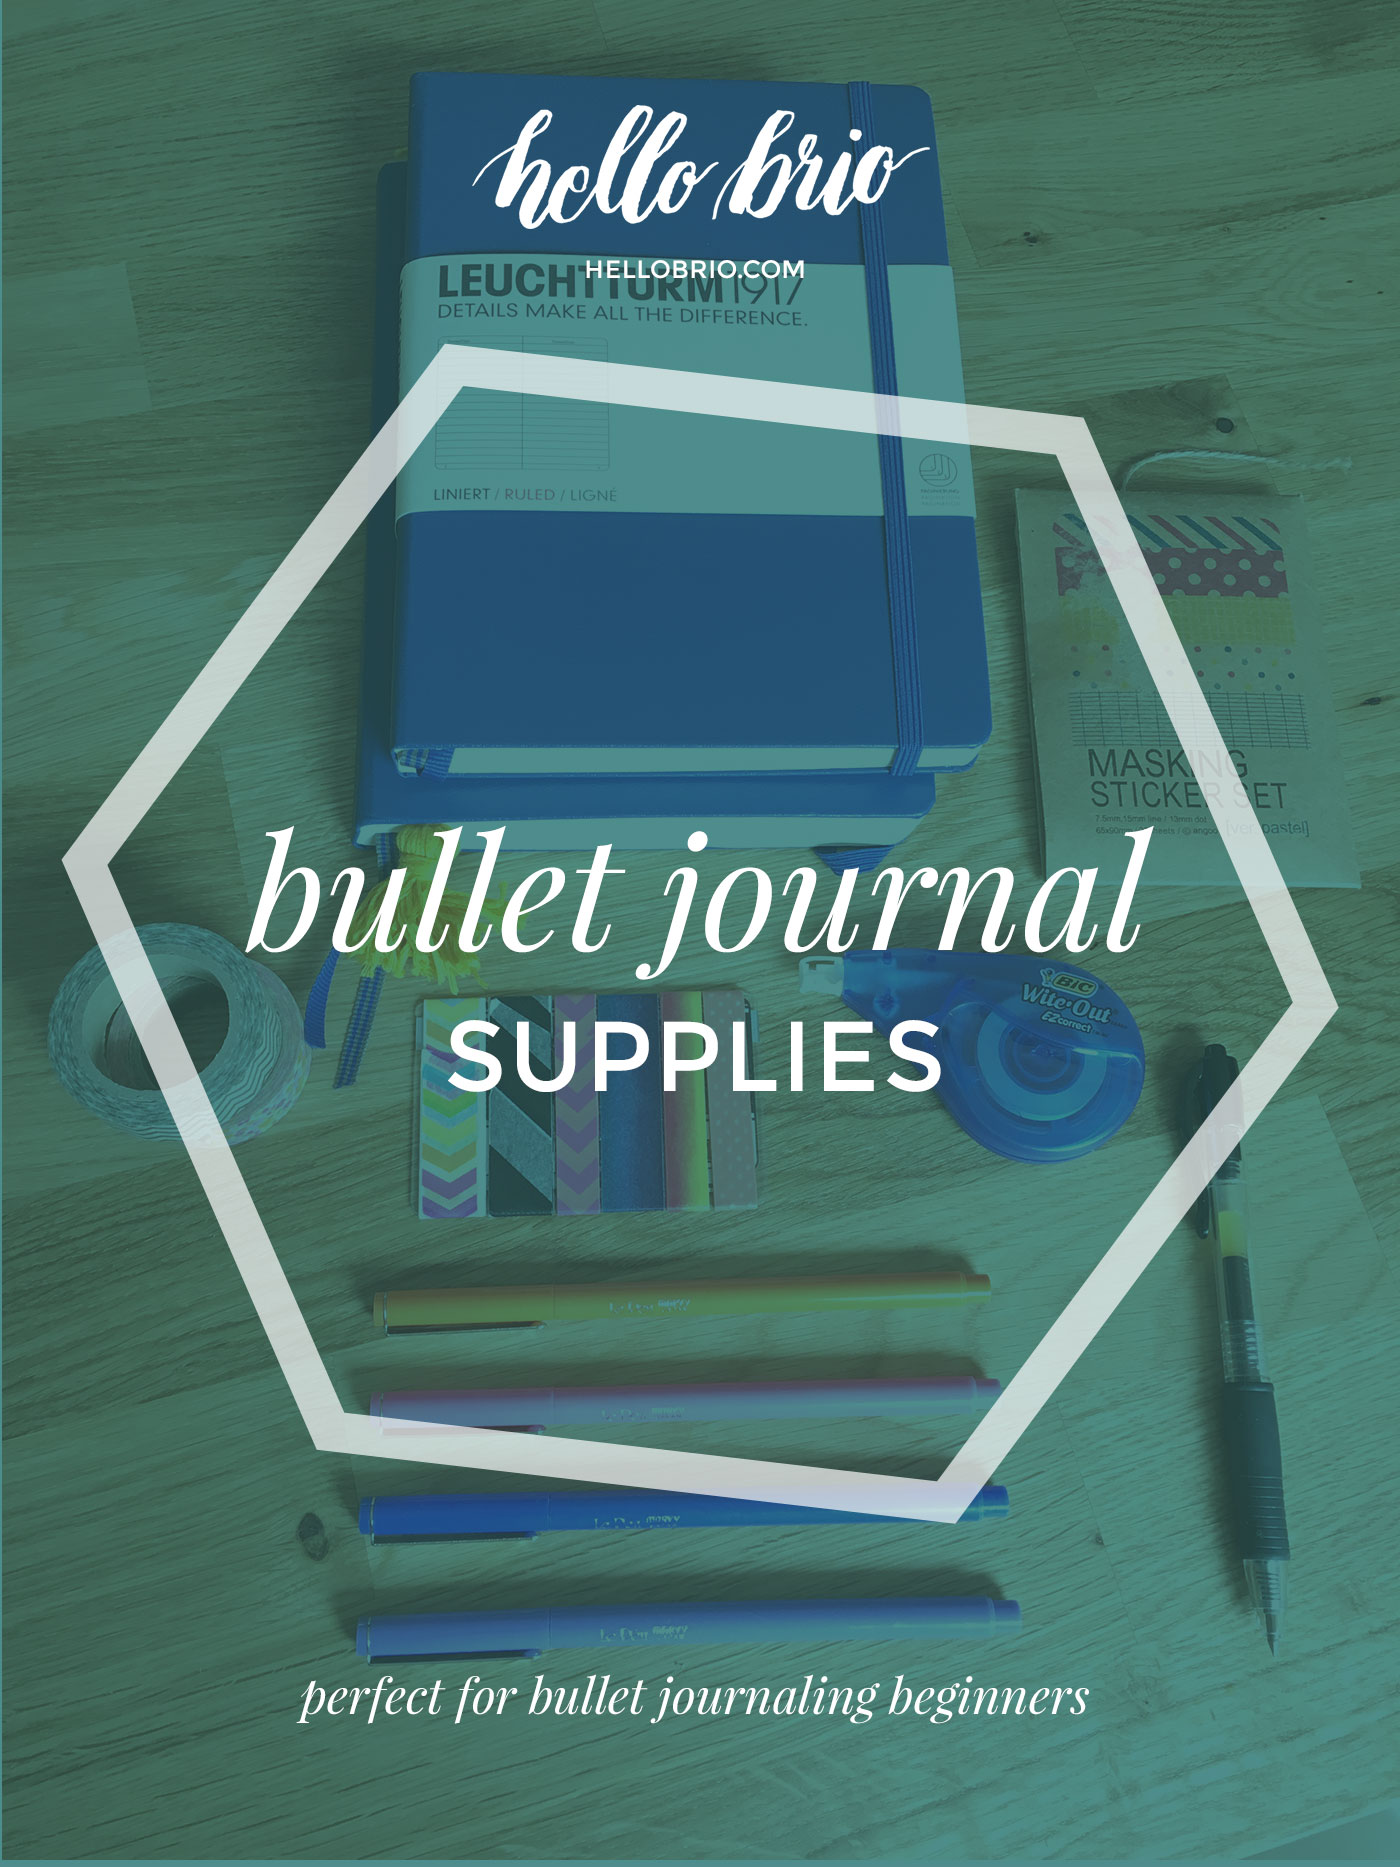 Getting started with bullet journaling - supplies you may need - perfect for beginners